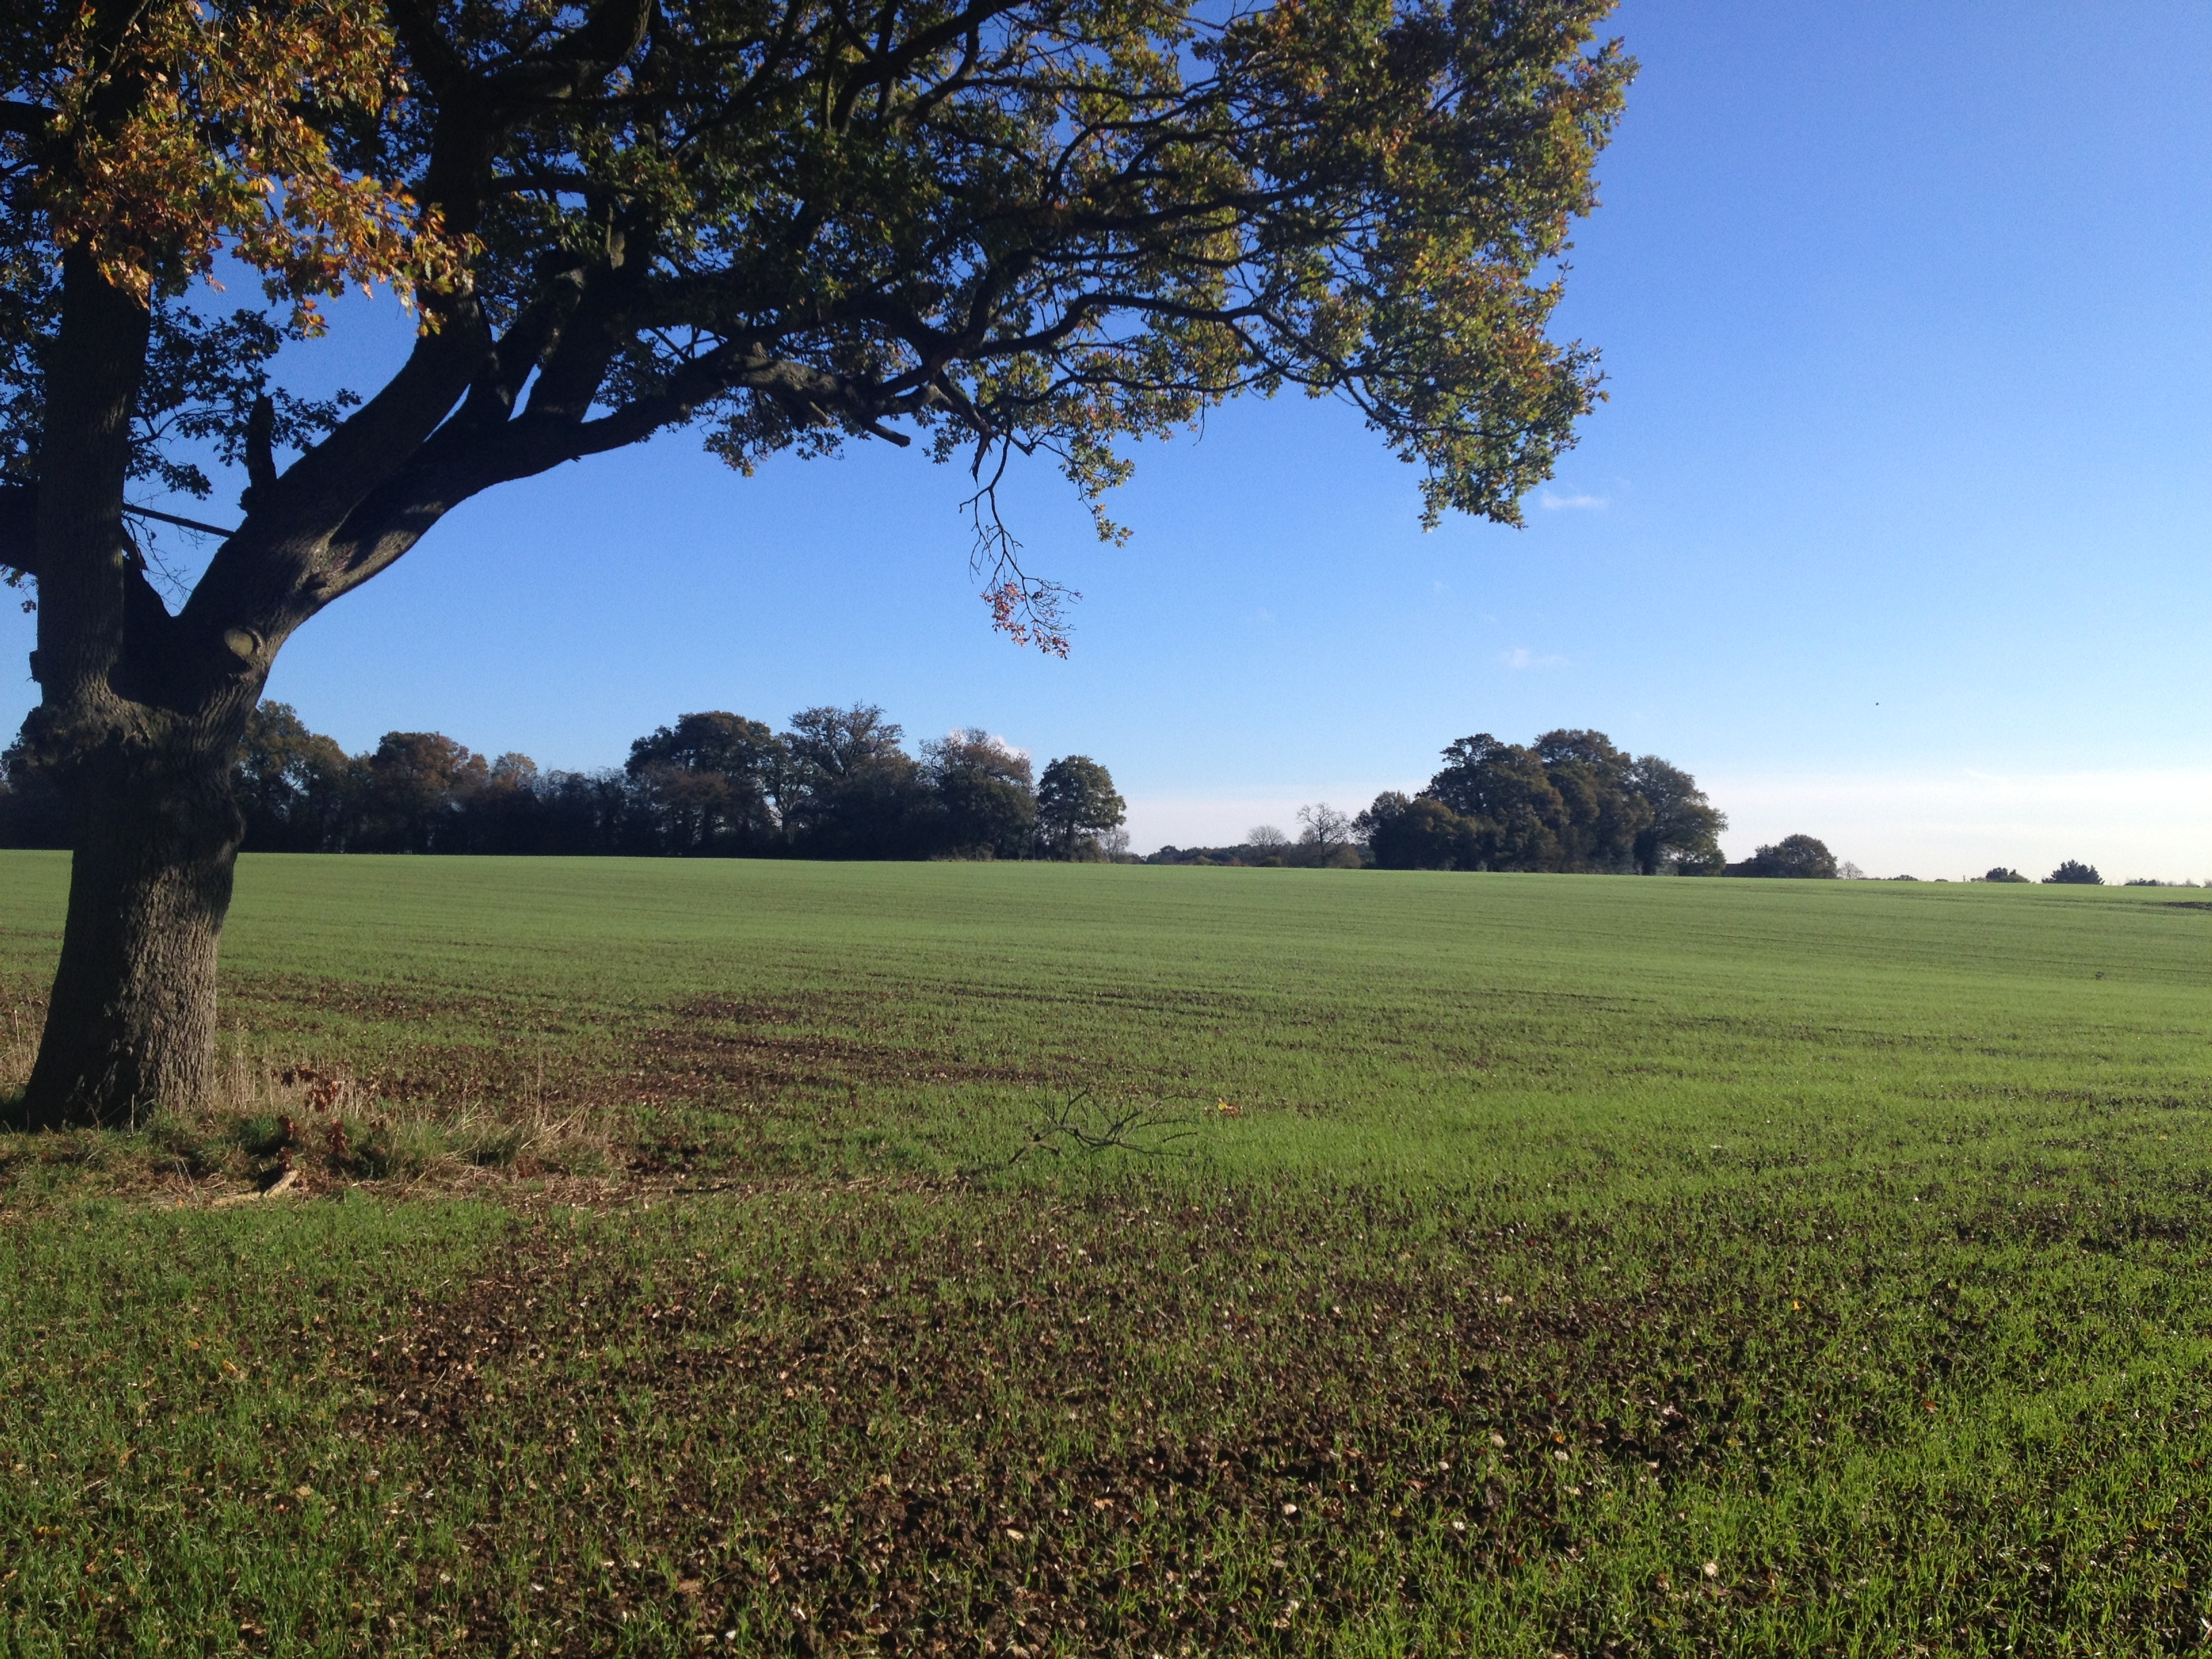 2014-11-04-wigmore-01-field-shot-nice-winter-scene.jpg